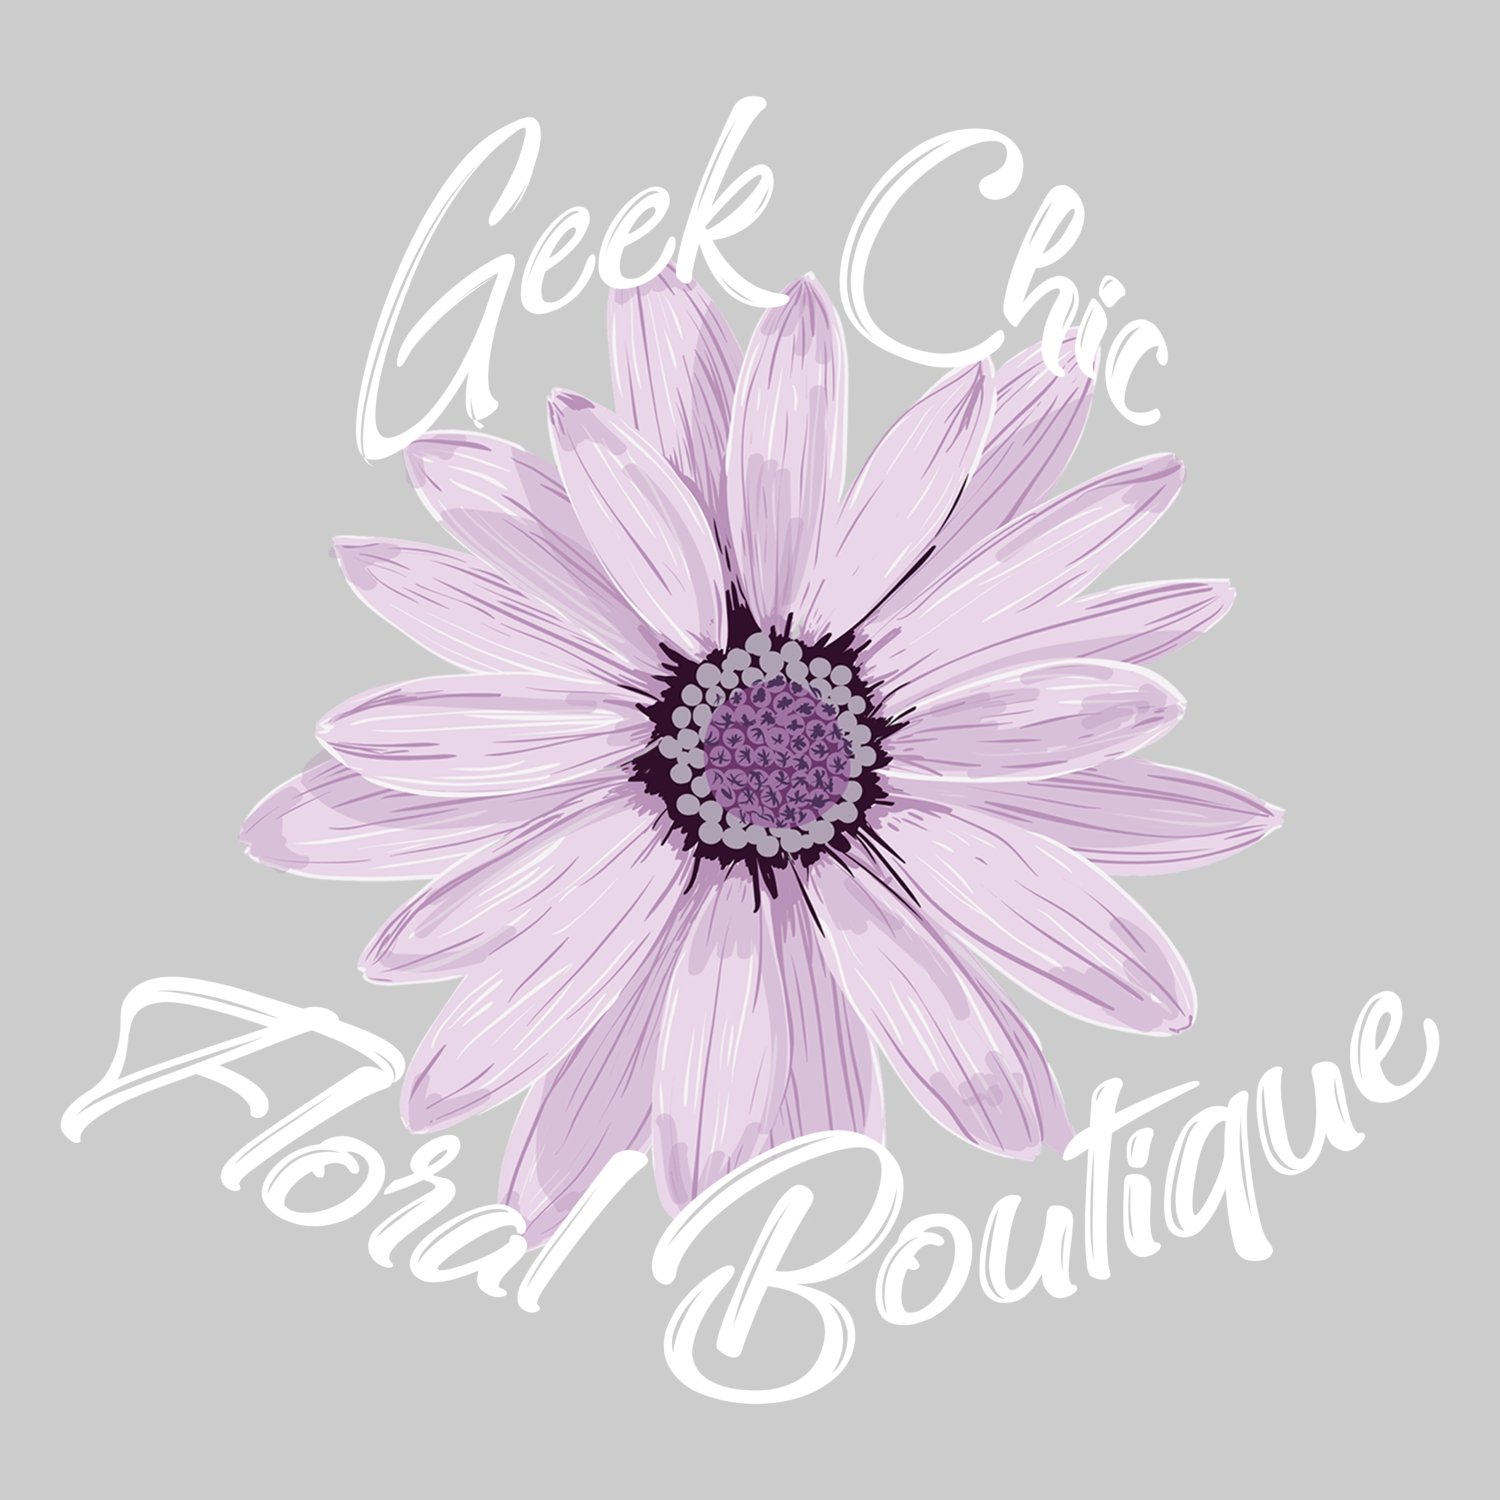 Geek Chic Floral Boutique, Dream Wedding Expo, Bridal Show, Livingston County Chamber, Gift Shop, Decor, Weddings IN Livingston